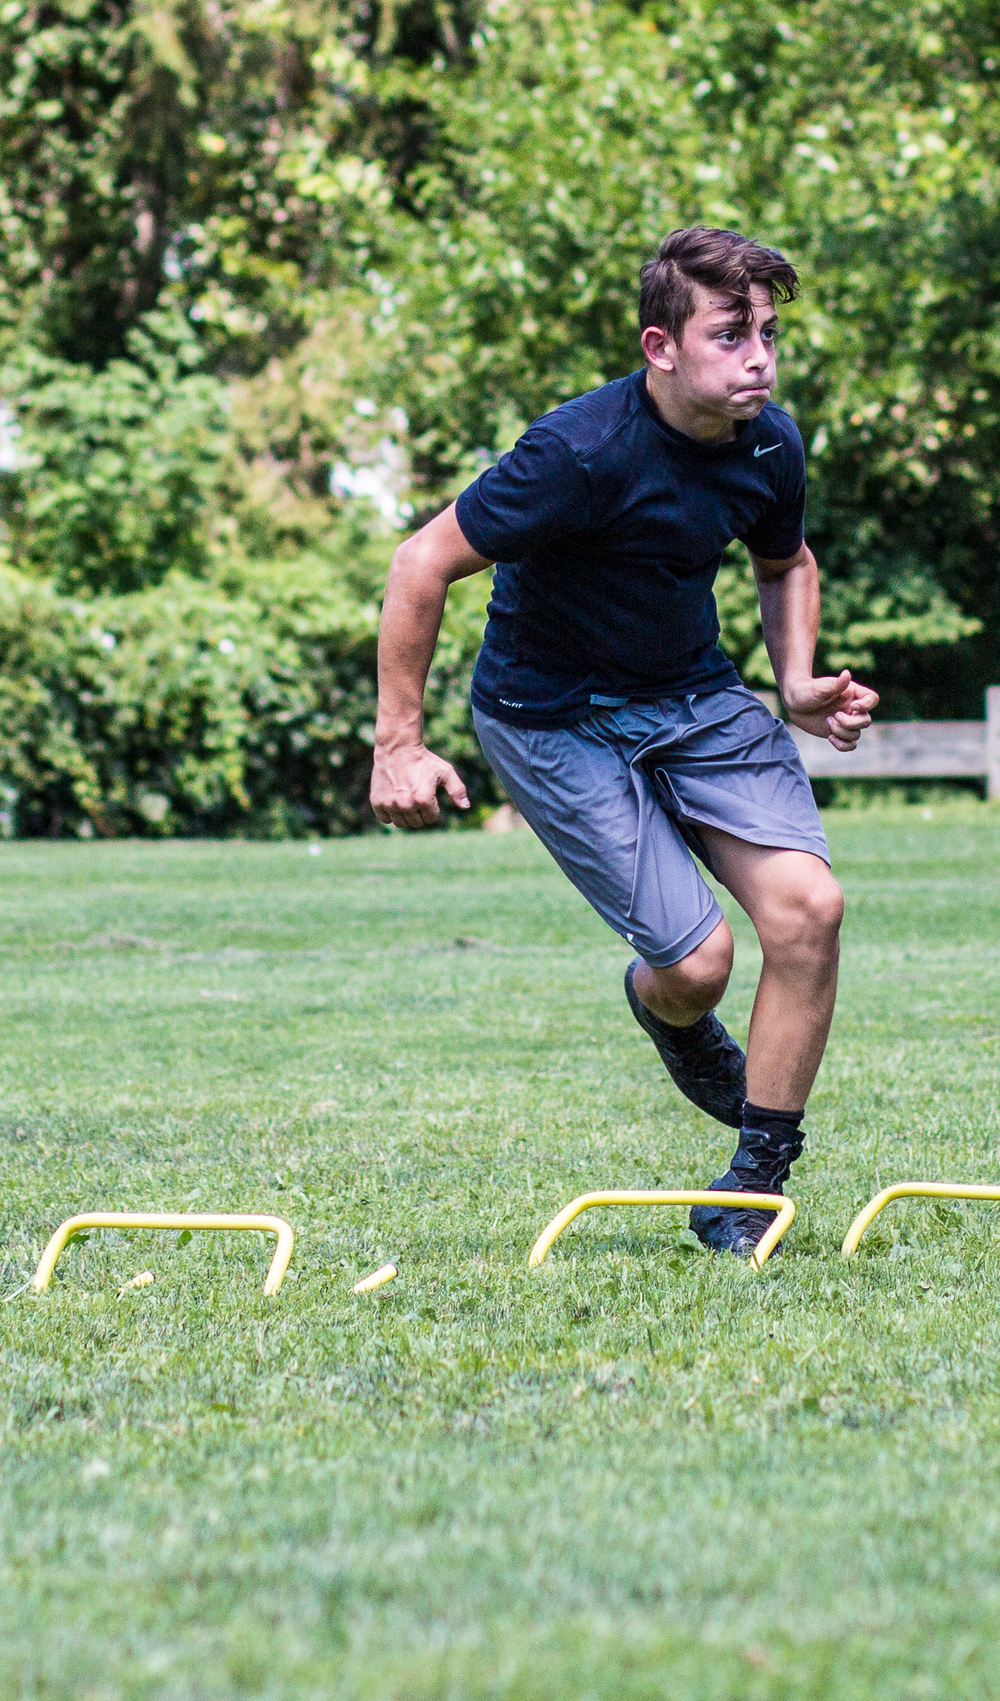 coach-mike-basciano-offseason-training-football-high-school-college-athletes (104 of 149).jpg